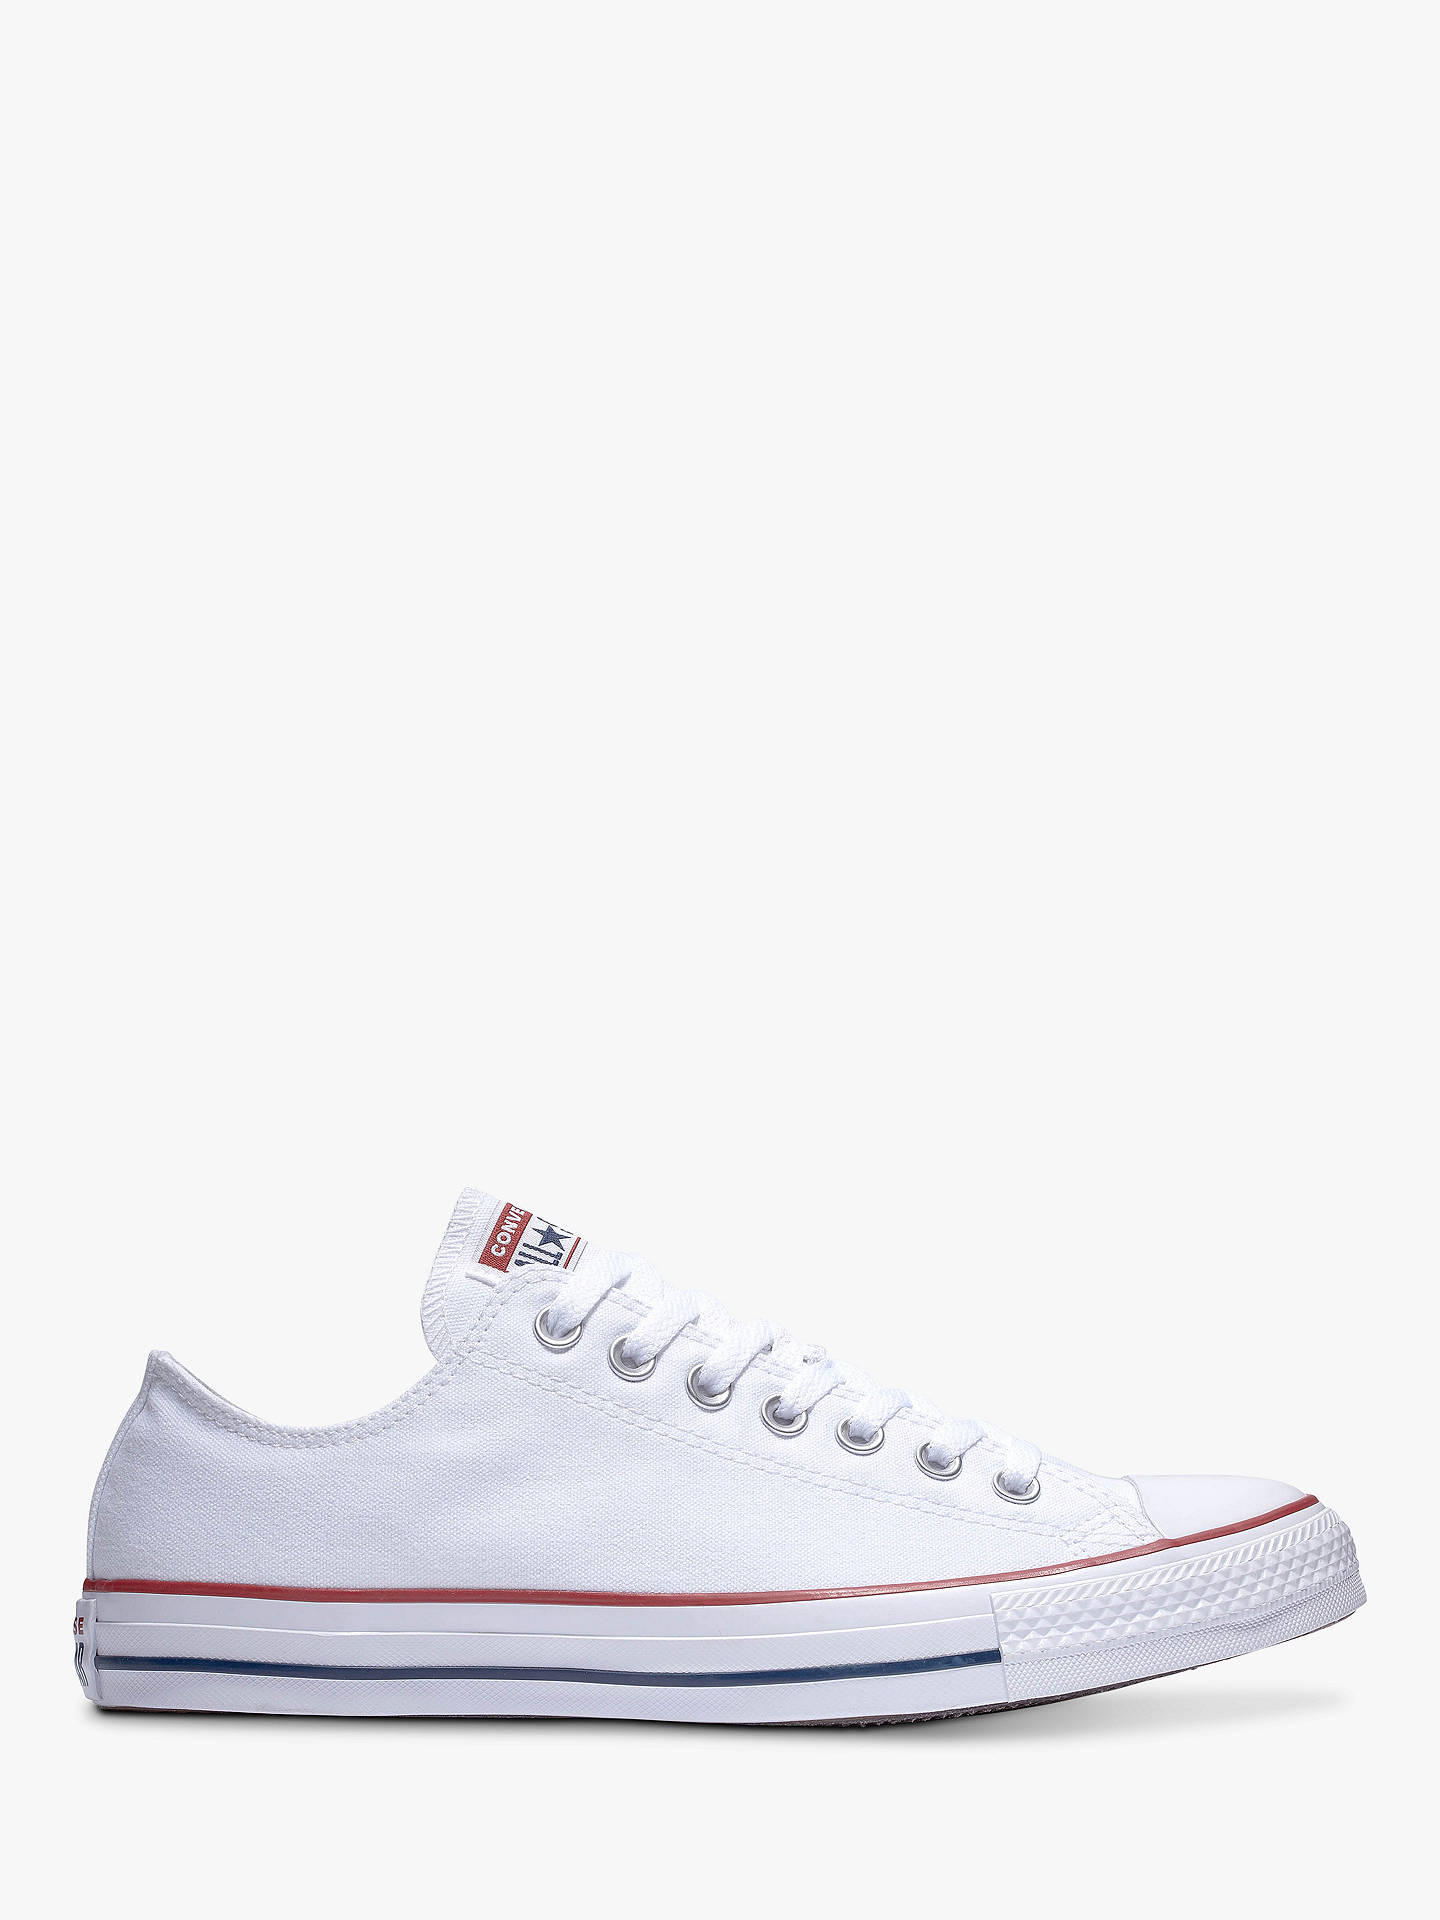 Converse Chuck Taylor All Star Canvas Ox Low-Top Trainers at John ... ab5b920fc3